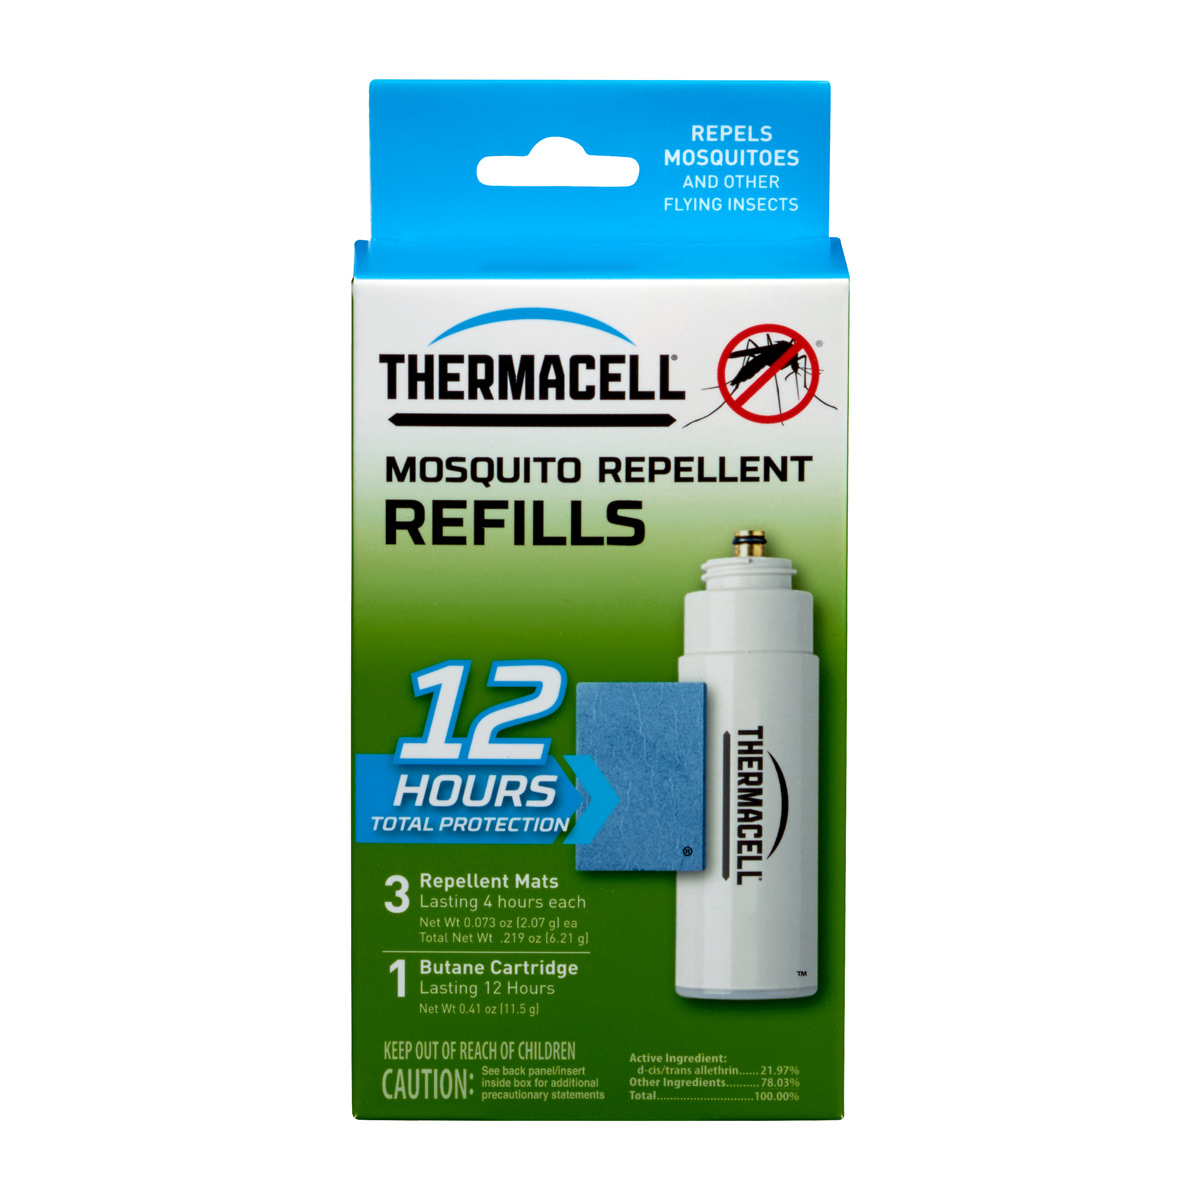 Thermacell Mosquito Repellent Refill, 12-Hour Protection by THERMACELL REPELLENTS, INC.